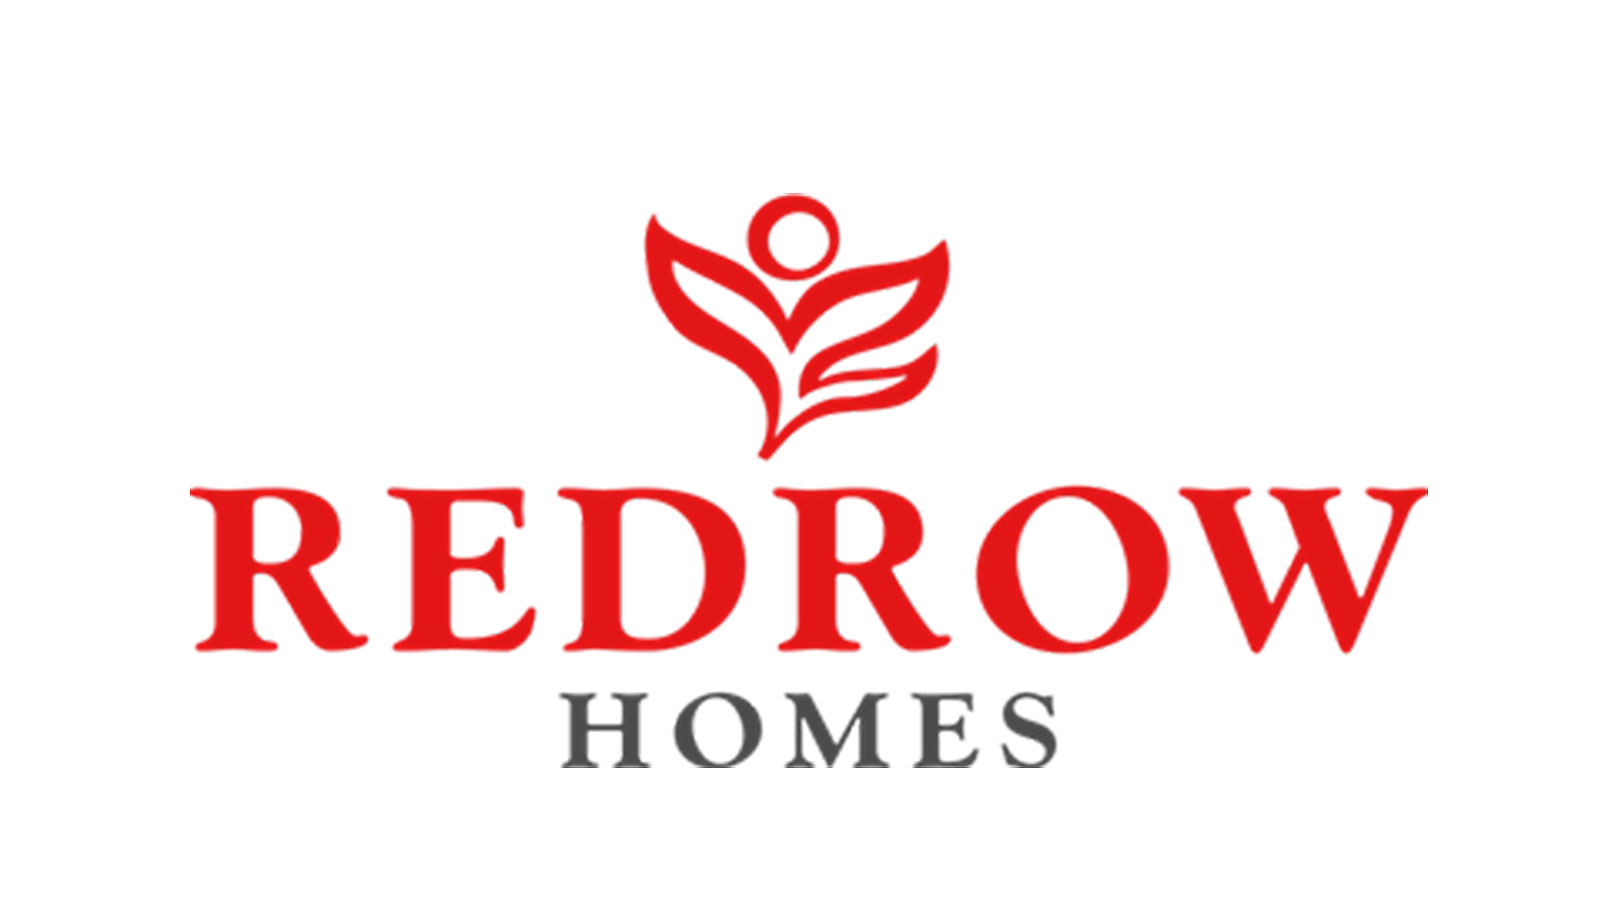 Redrow Homes selects Asite\'s Adoddle as their Enterprise Common Data ...